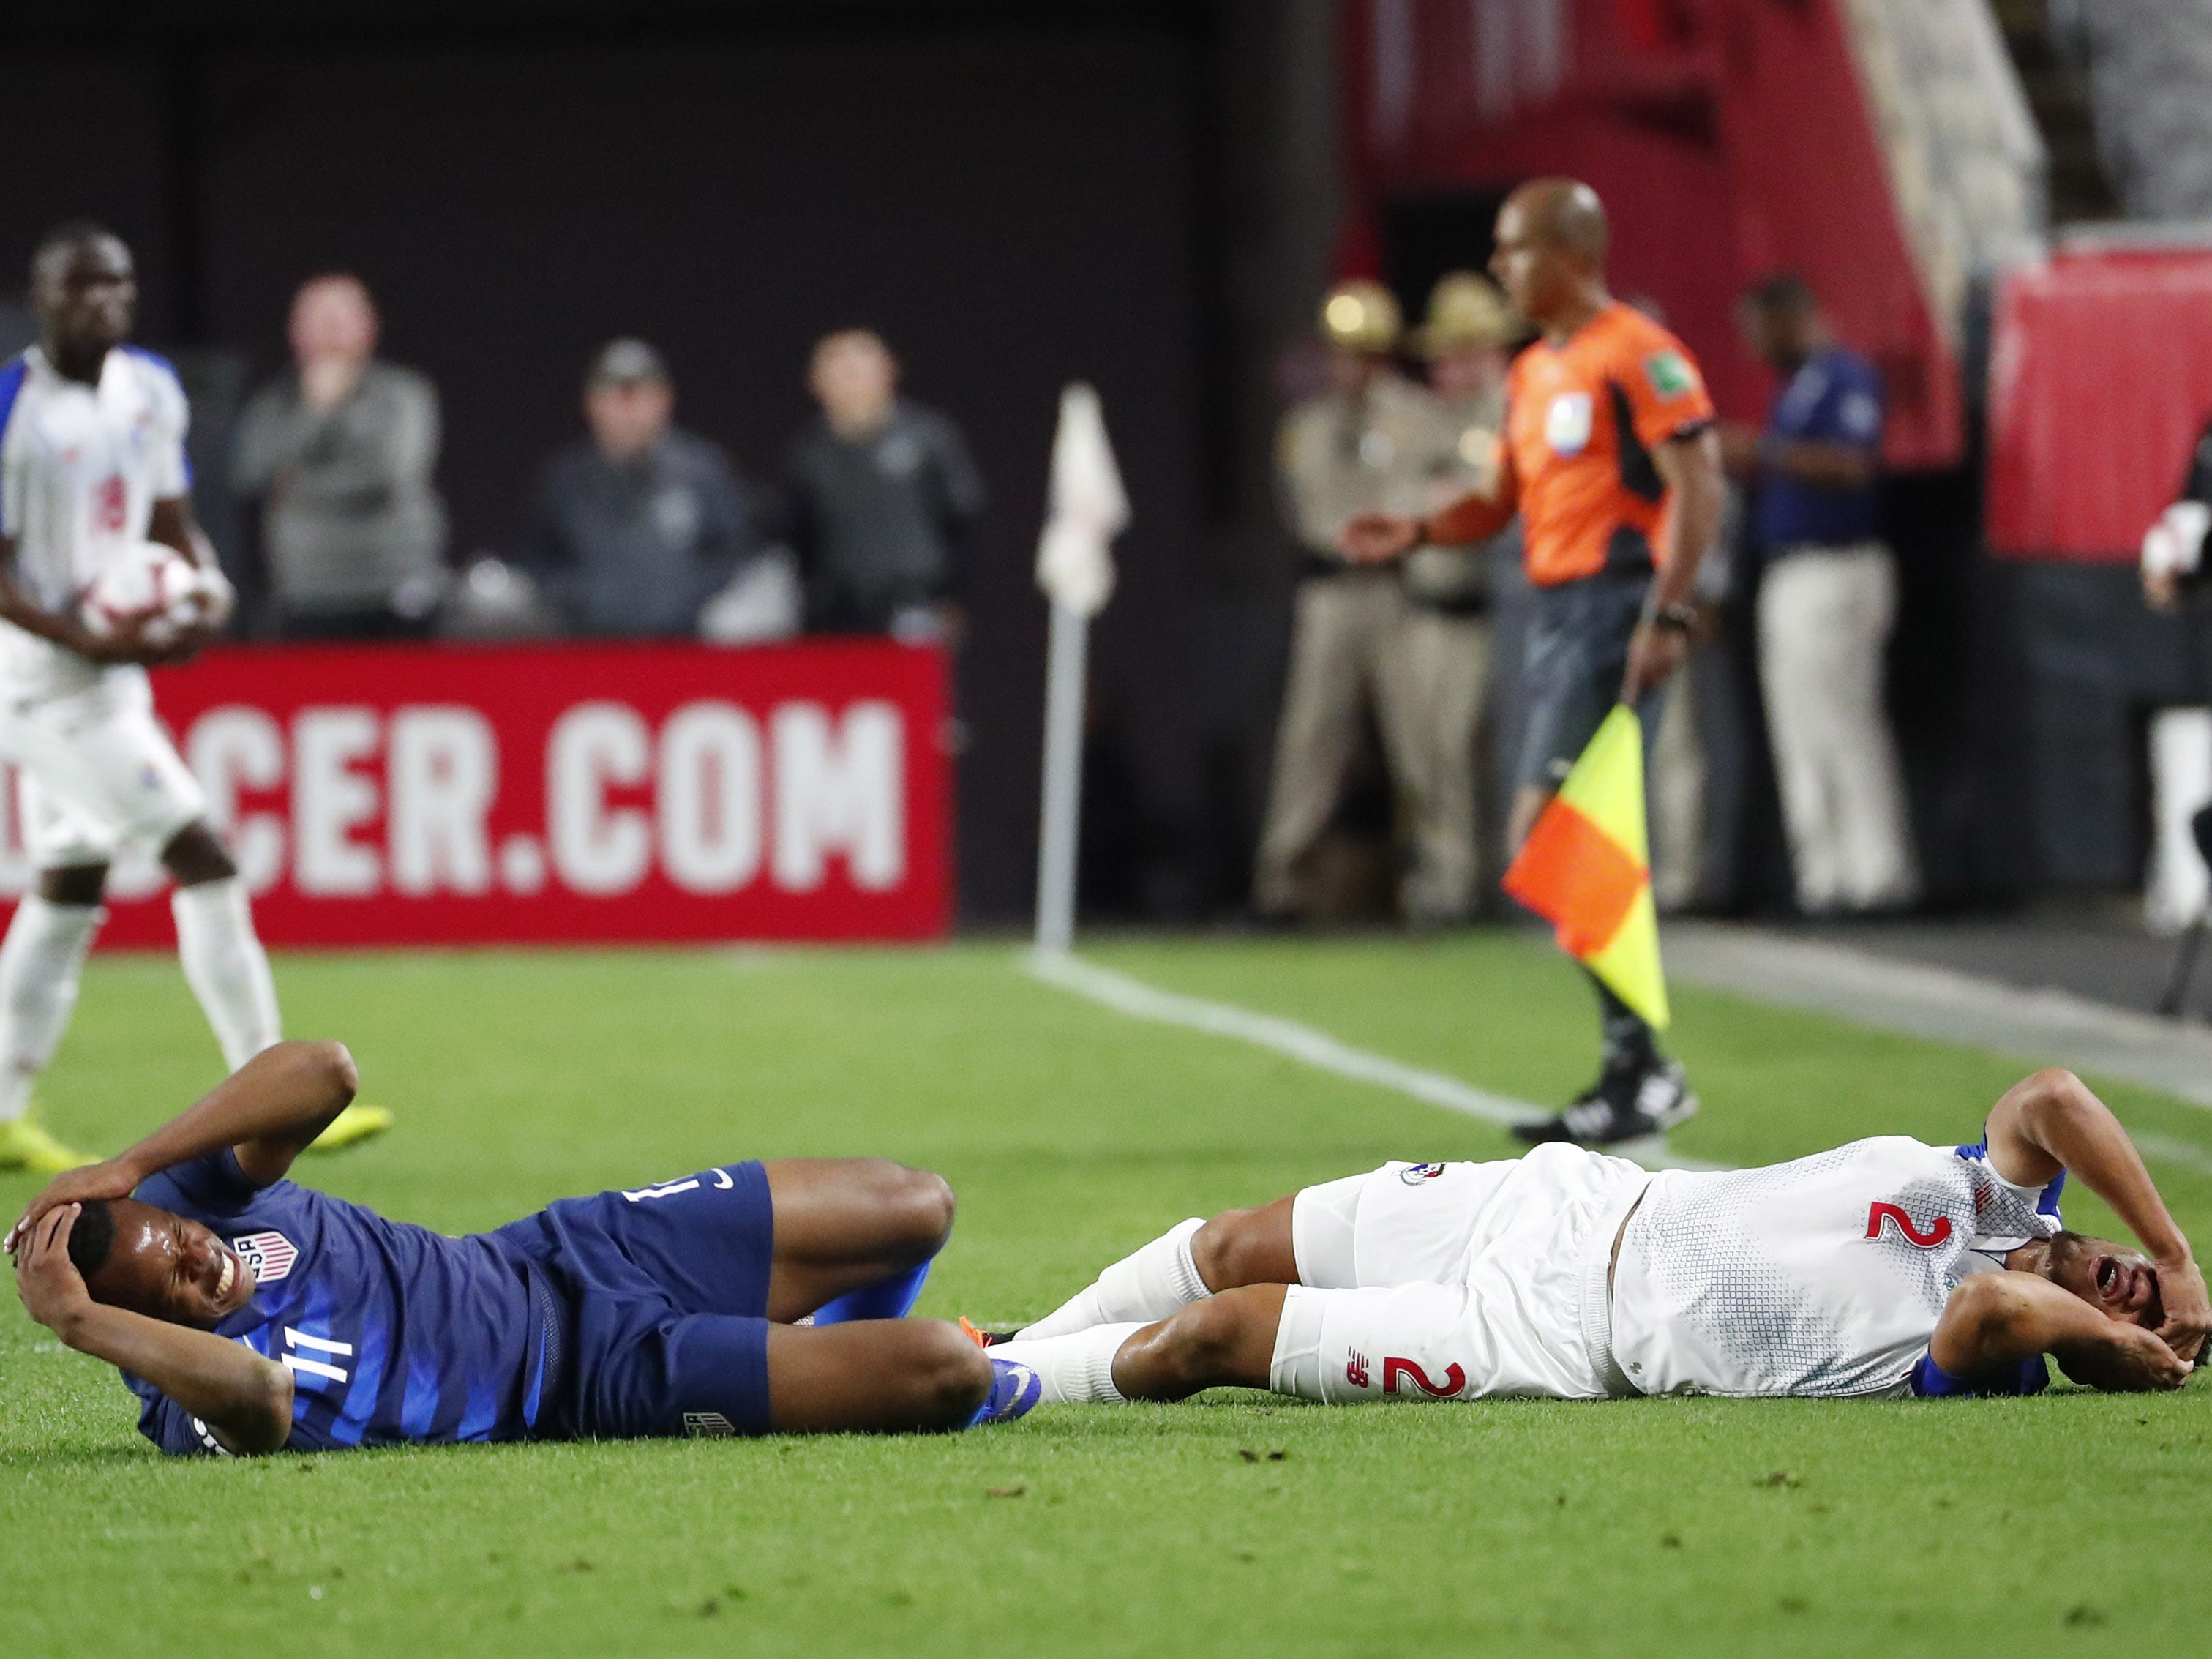 U.S. forward Jeremy Ebobisse (11) and Panama defender Francisco Palacios (2) lay on the ground after colliding on a header during the first half of a friendly on Jan. 27, 2019 in Glendale, Ariz.